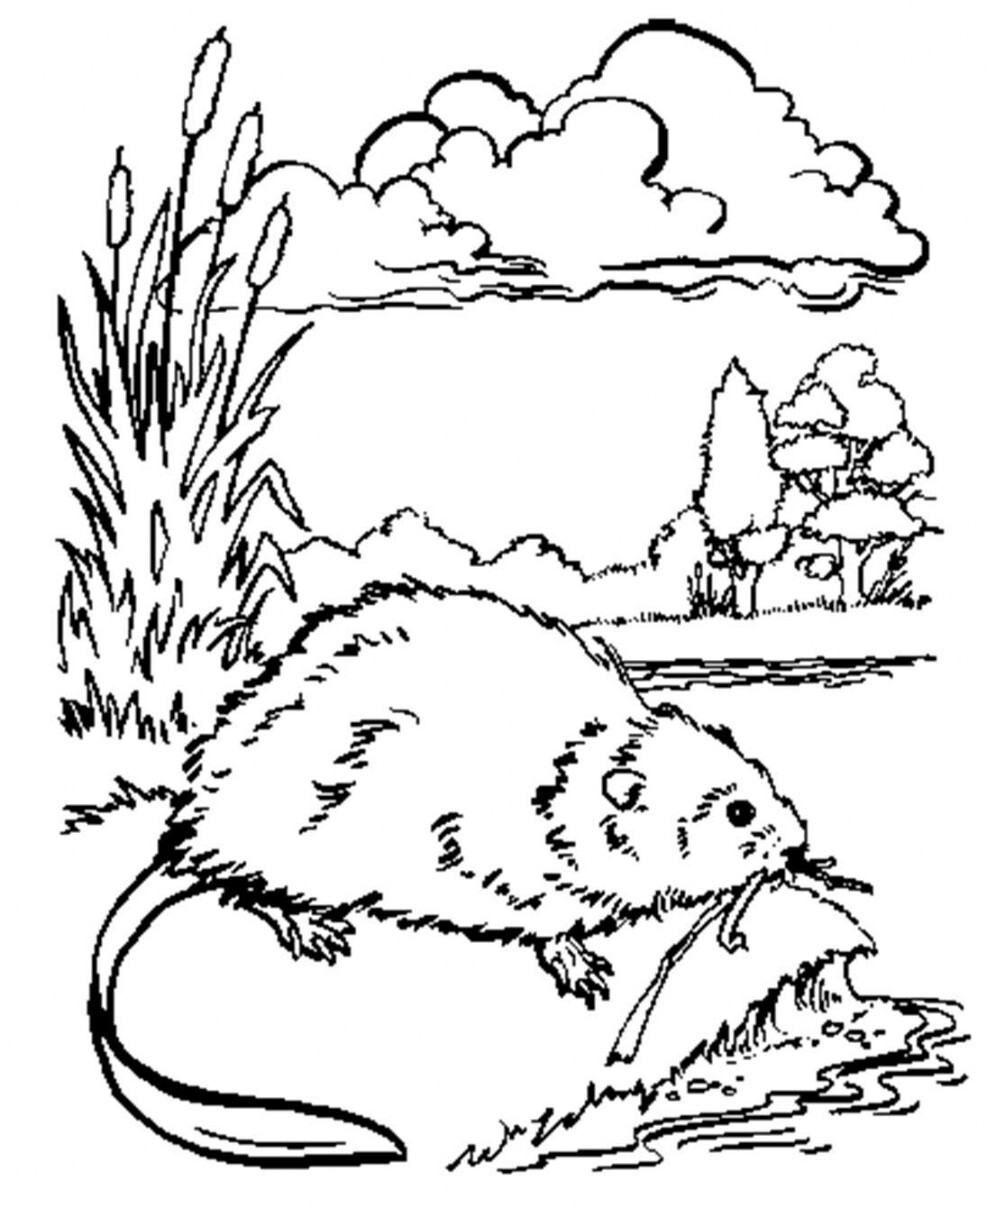 Image of muskrat to print and color